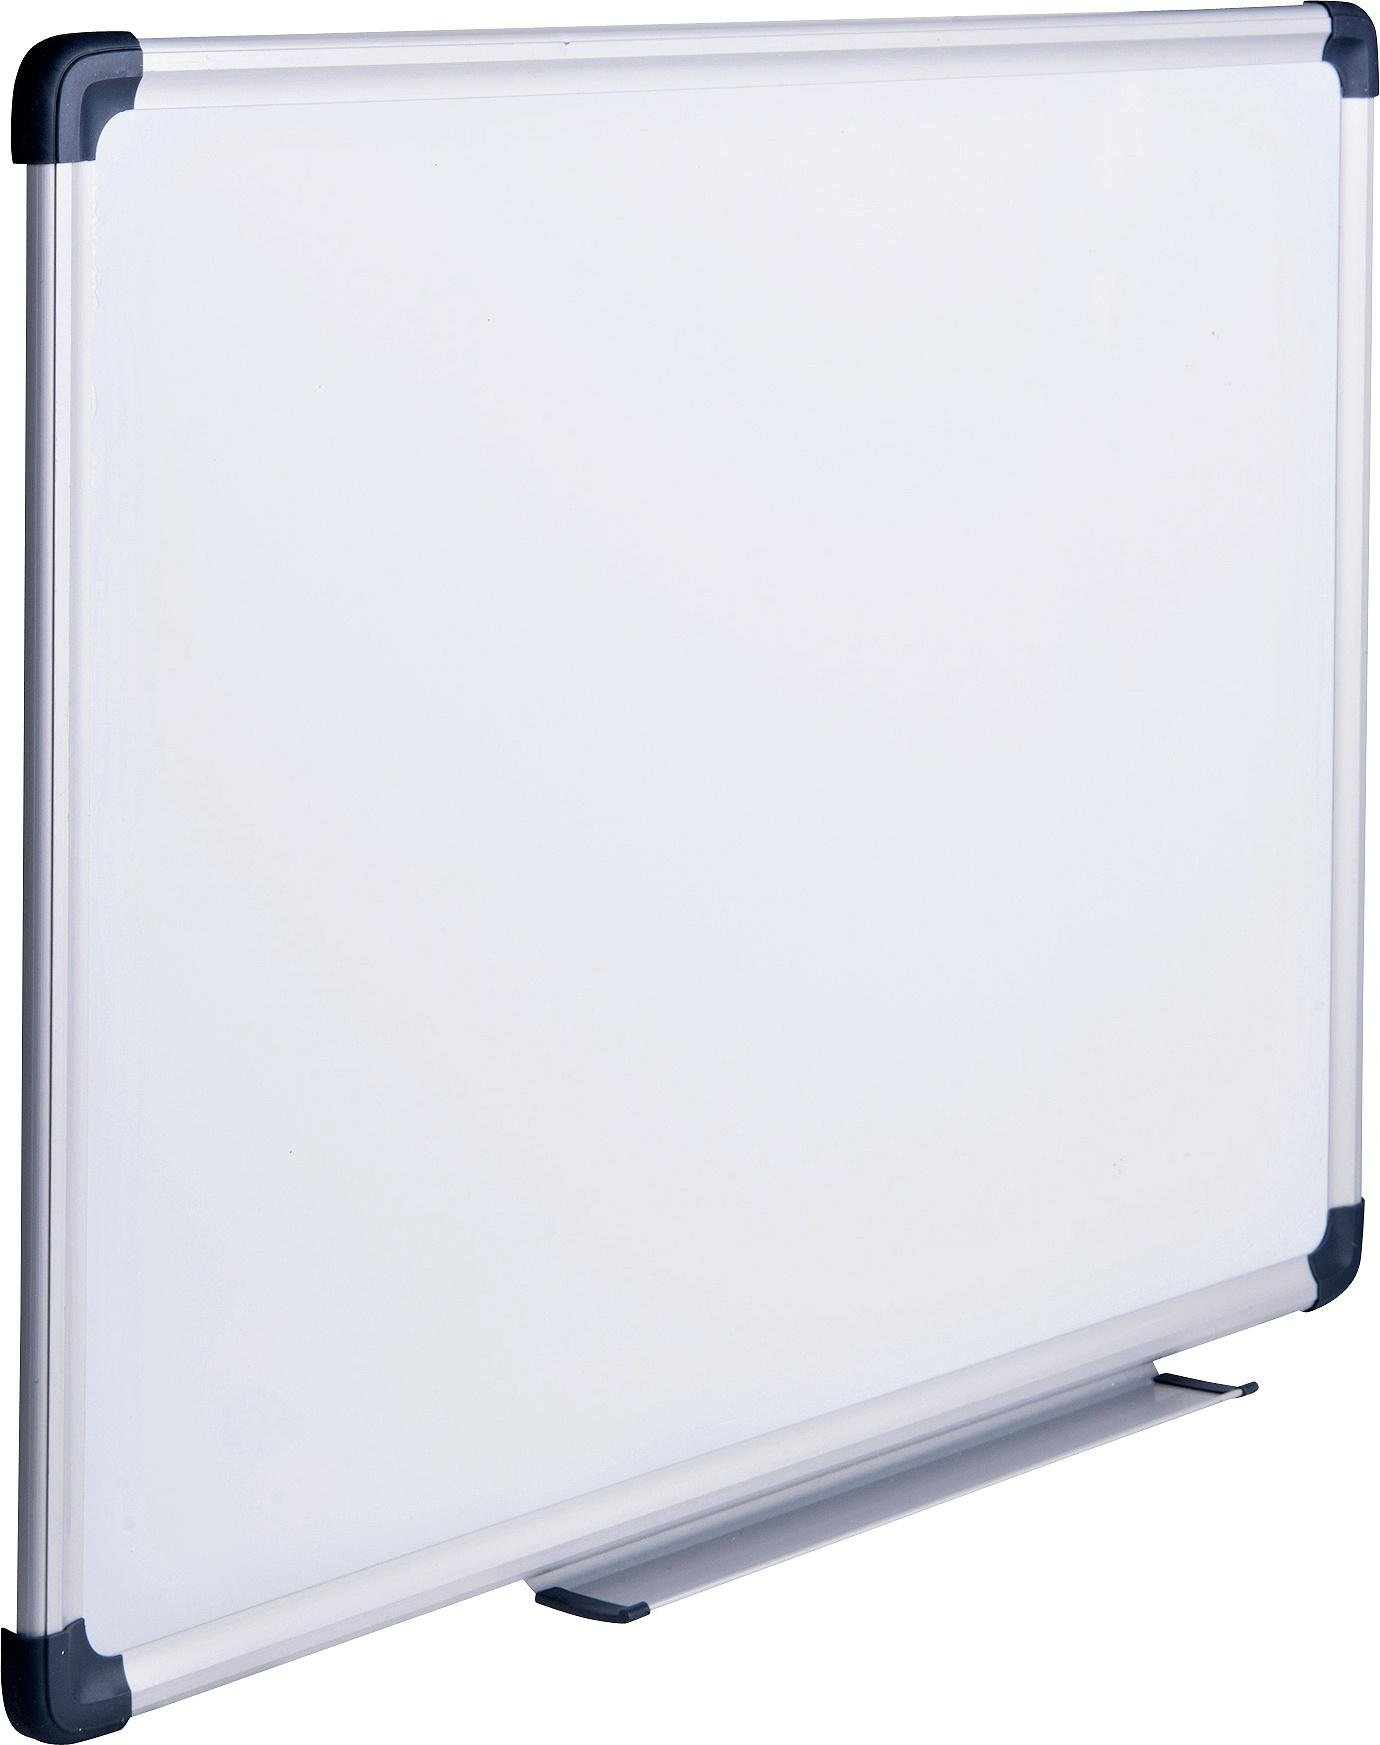 Image of Cathedral Magnetic Whiteboard 45 x 60cm